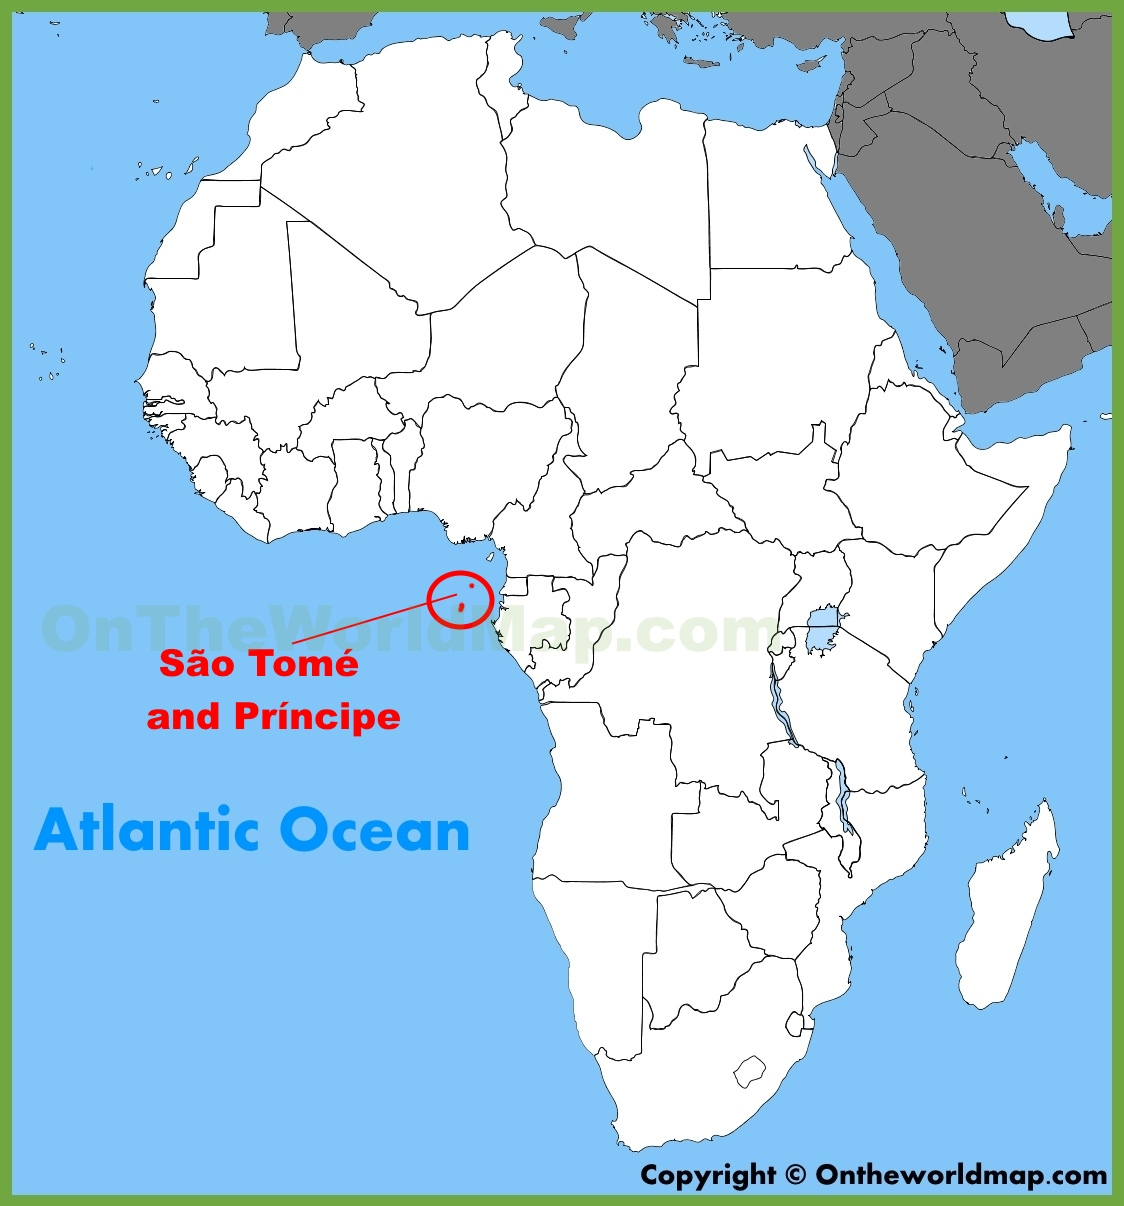 Sao Tome And Principe Africa Map Sao Tome and Principe location on the Africa map